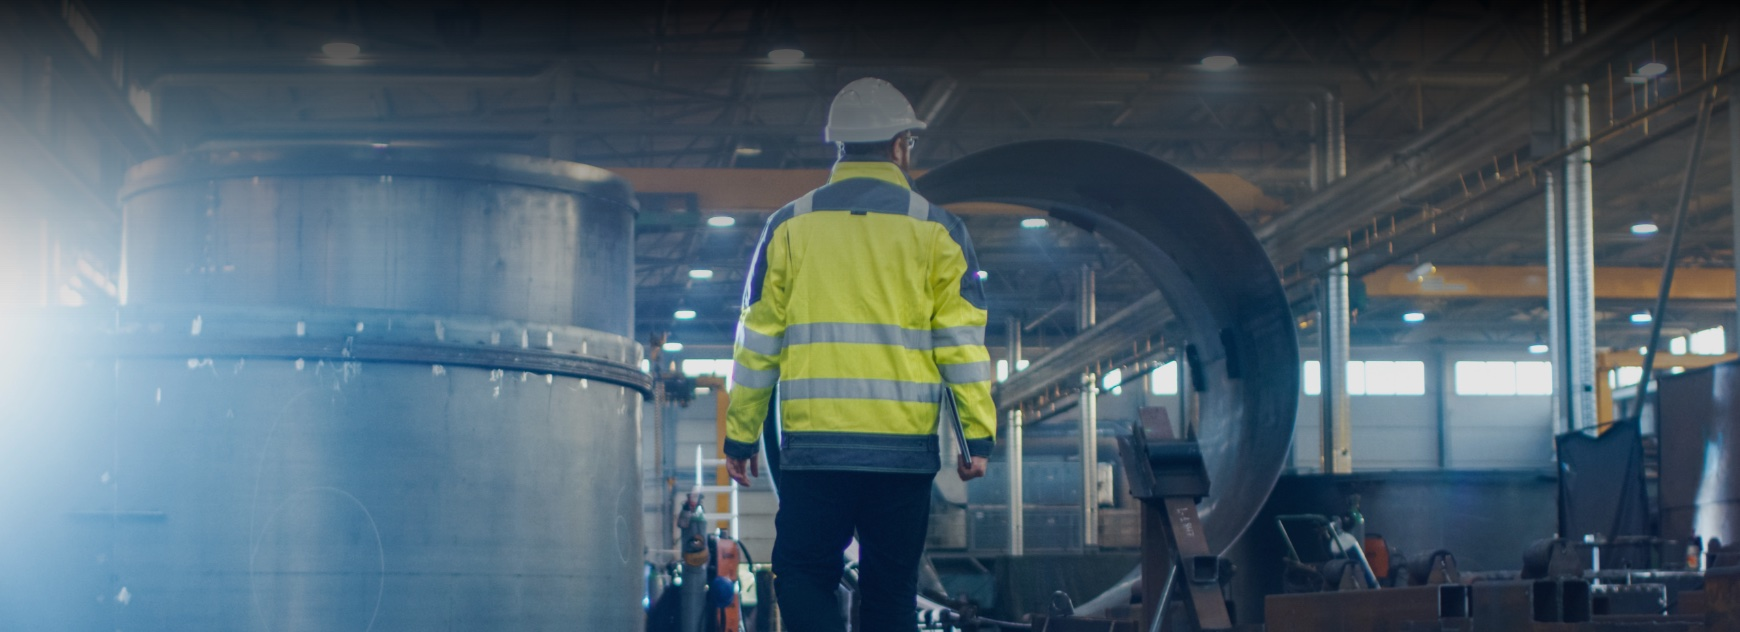 engineer walking through industrial factory